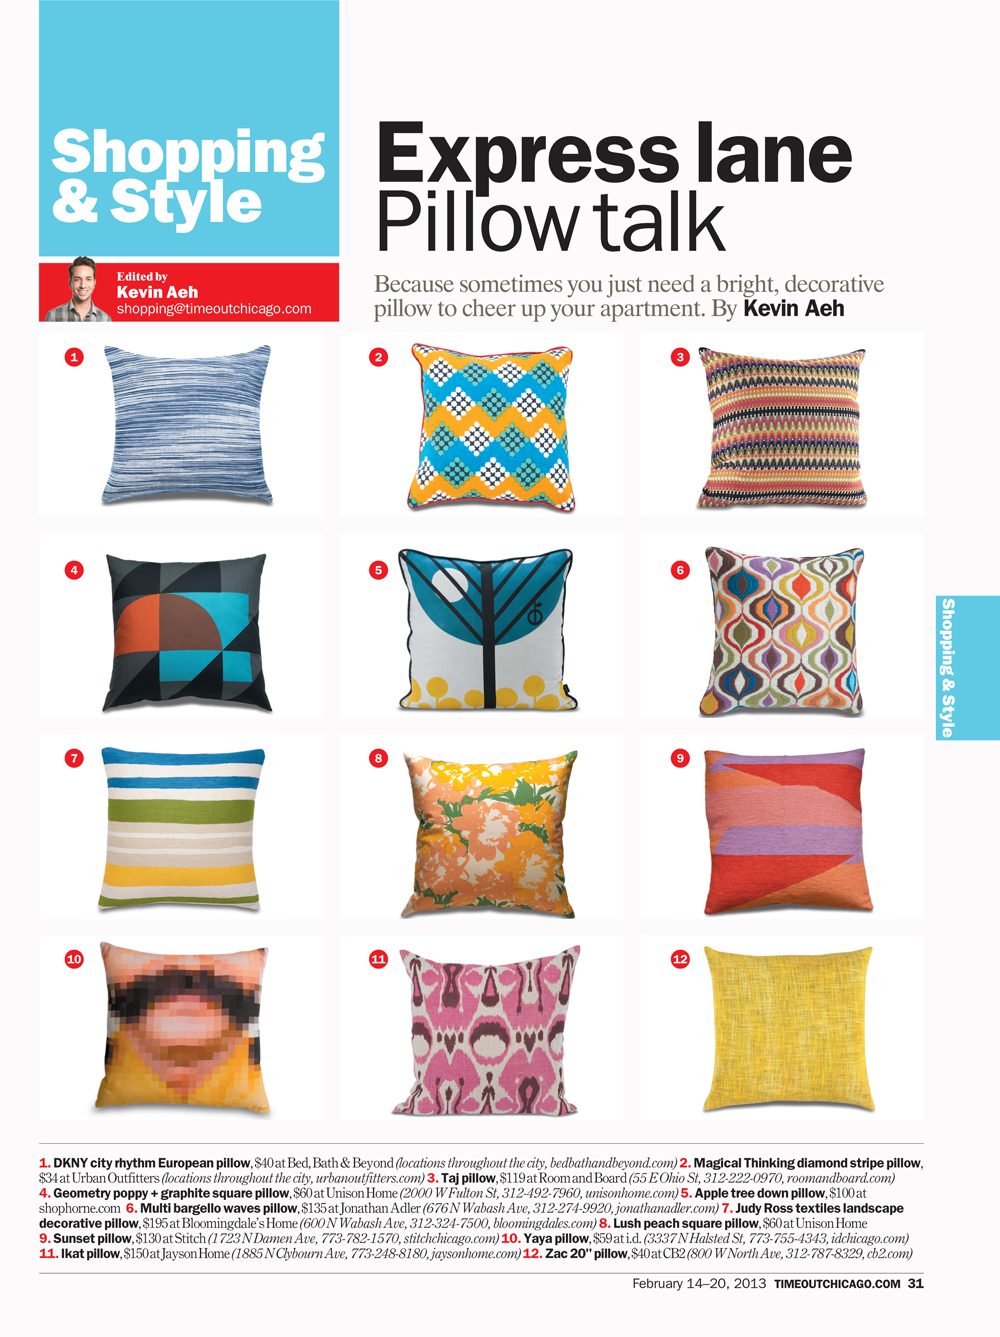 Geometry and Lush Pillows featured in TOC Feb 2013